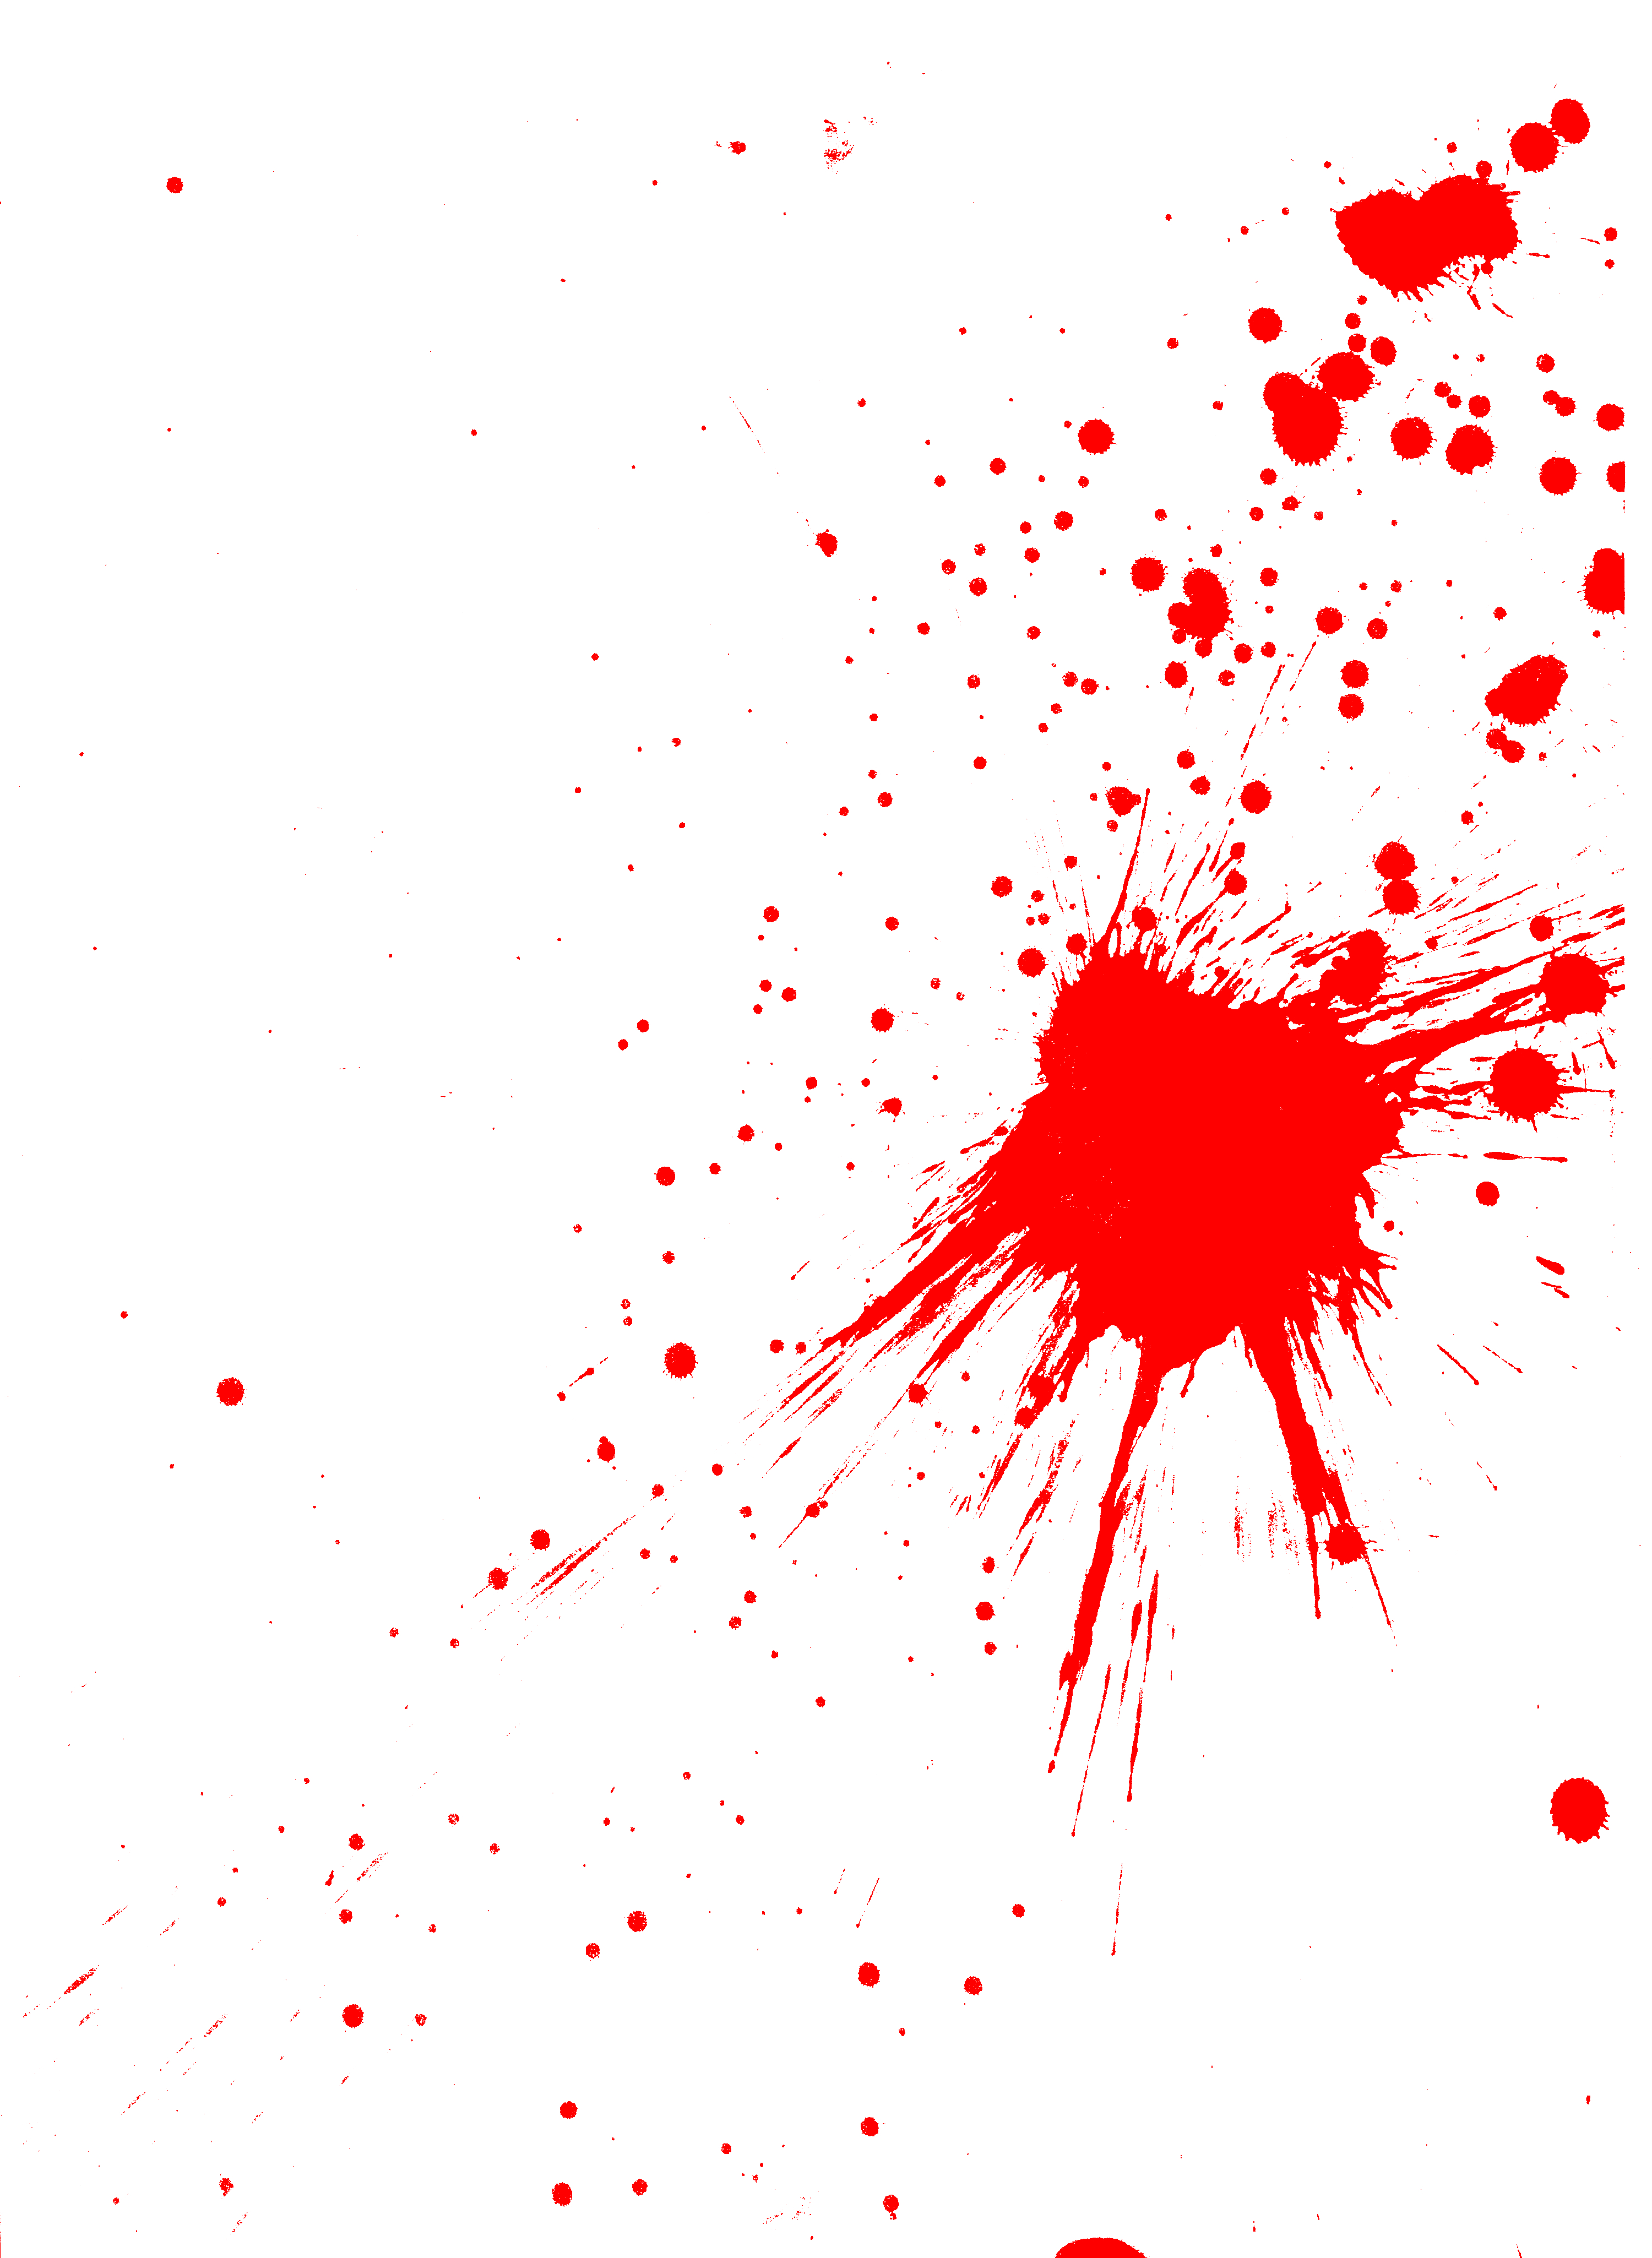 15 Blood Splatter Textures Jpg Onlyg 692697 Png Images Pngio Blood splatter transparency by sagacious on deviantart, free portable network graphics (png) archive. pngio com